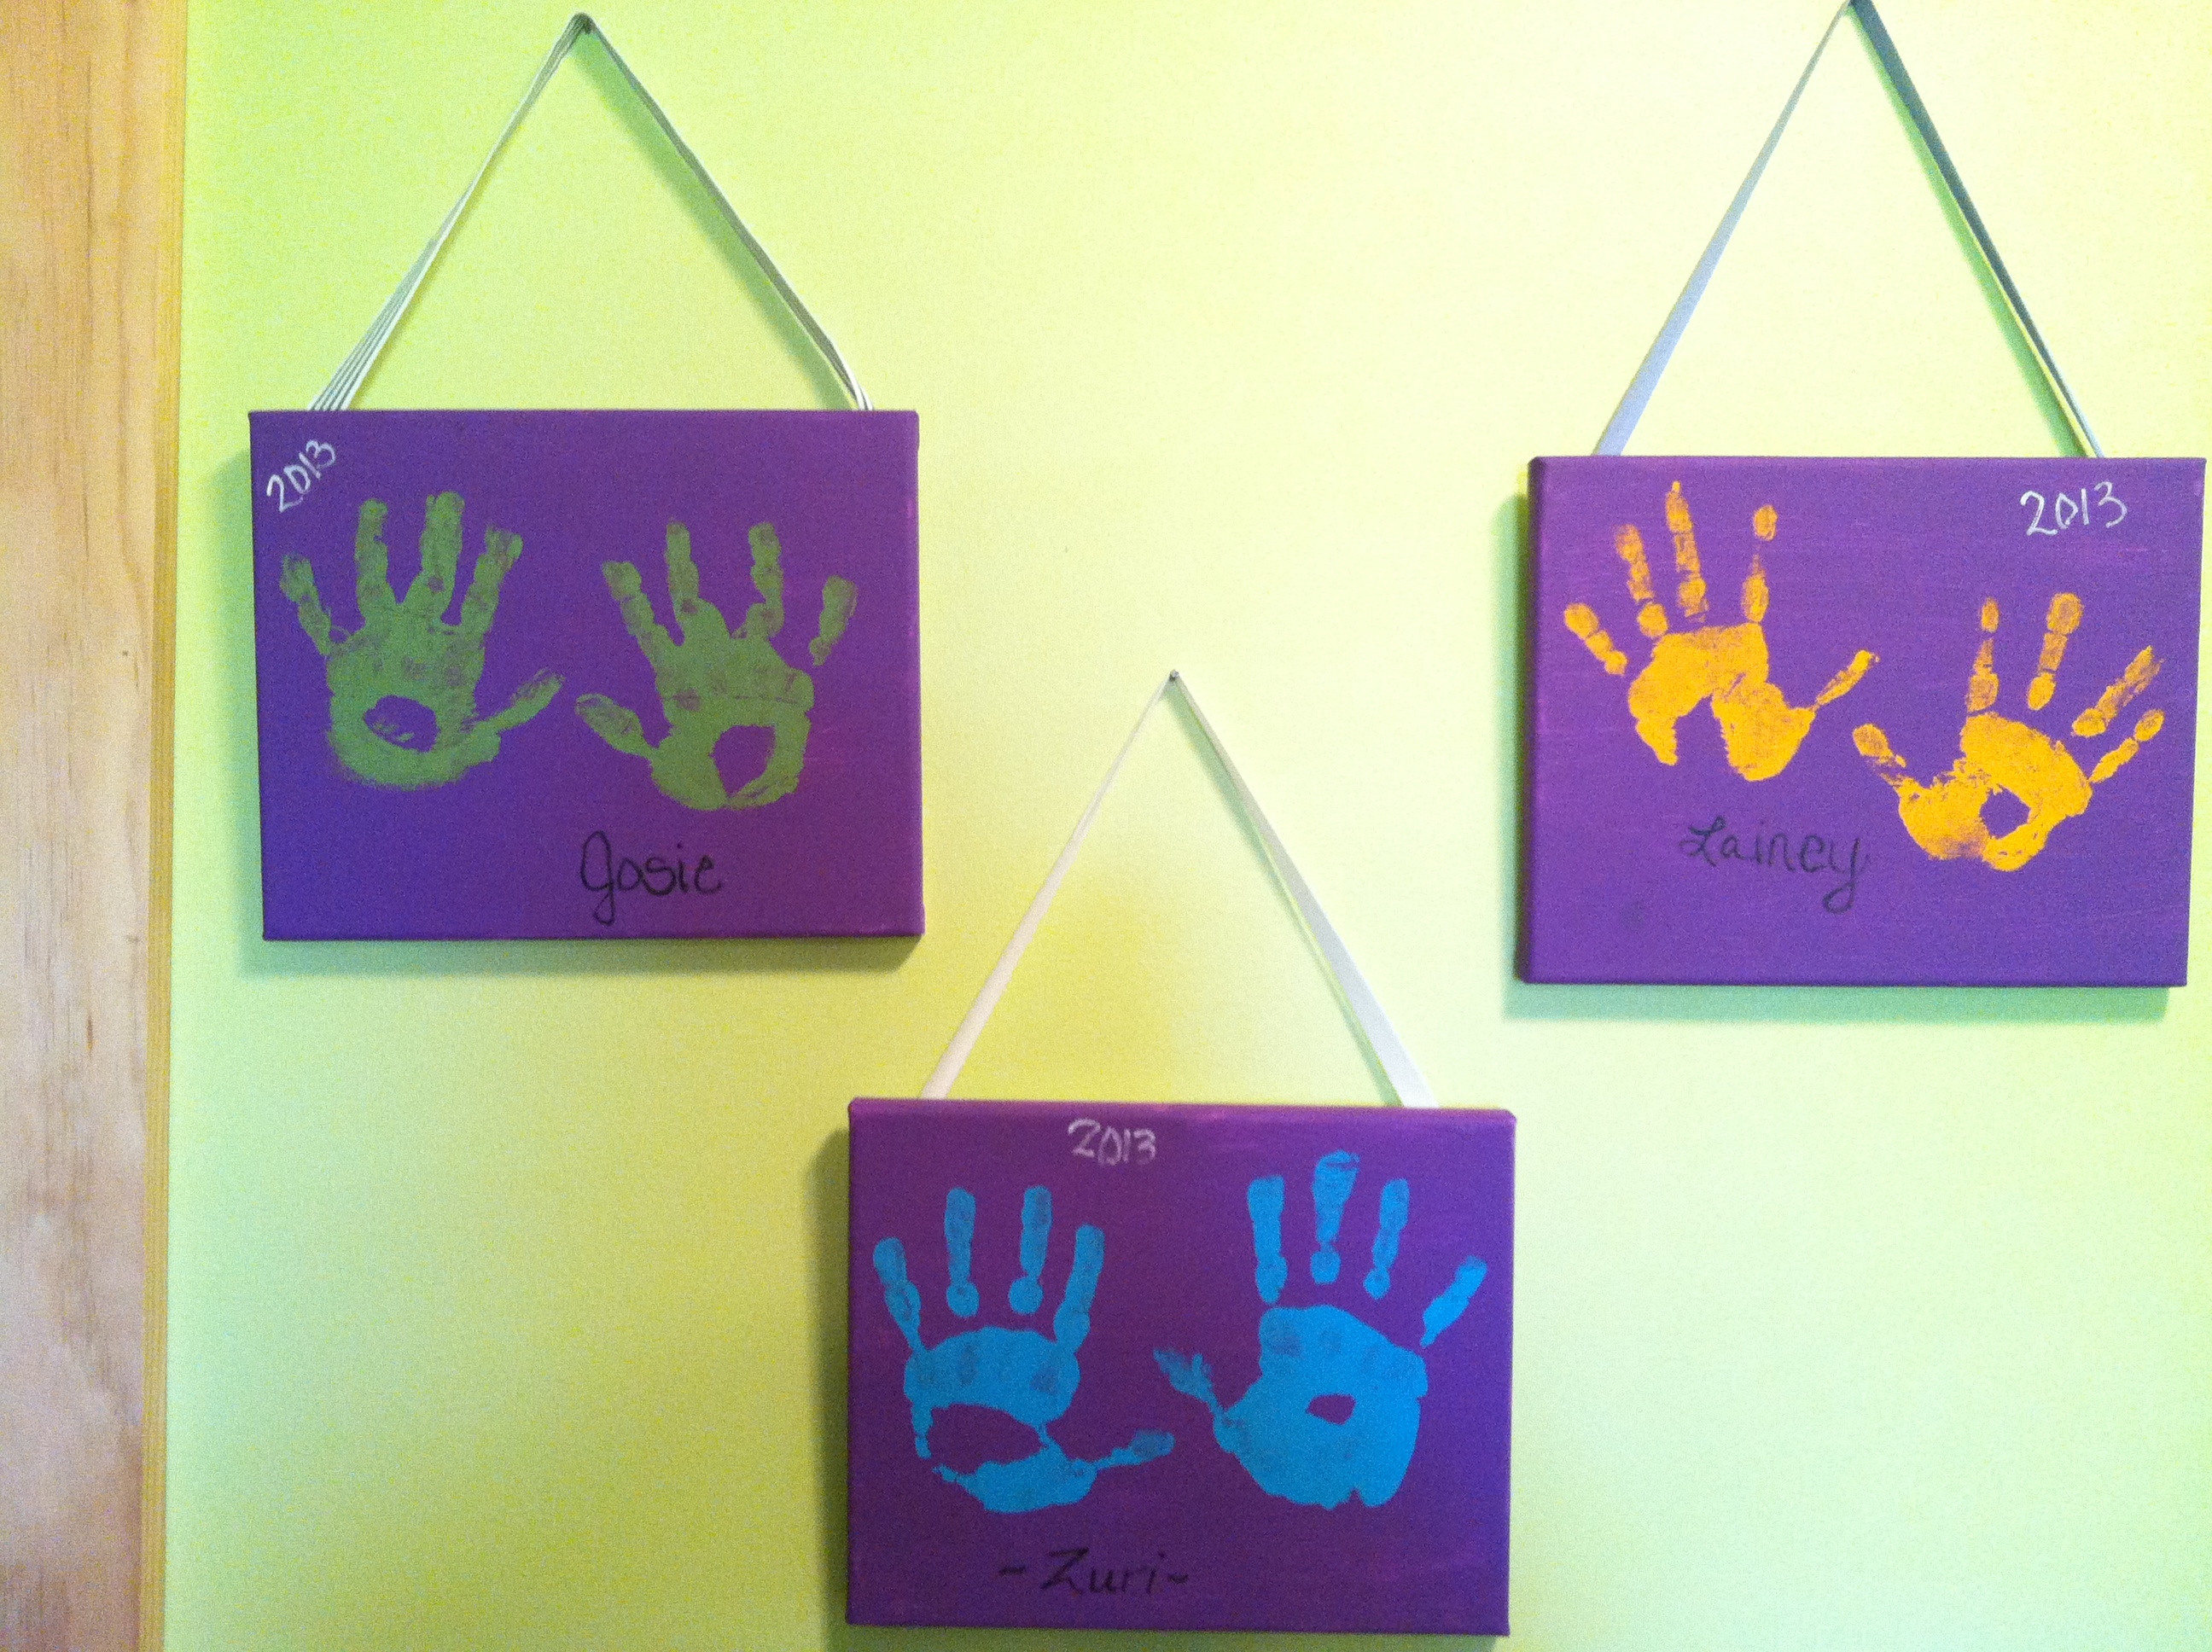 Family Handprints On Canvas - The Best Hand Of 2018